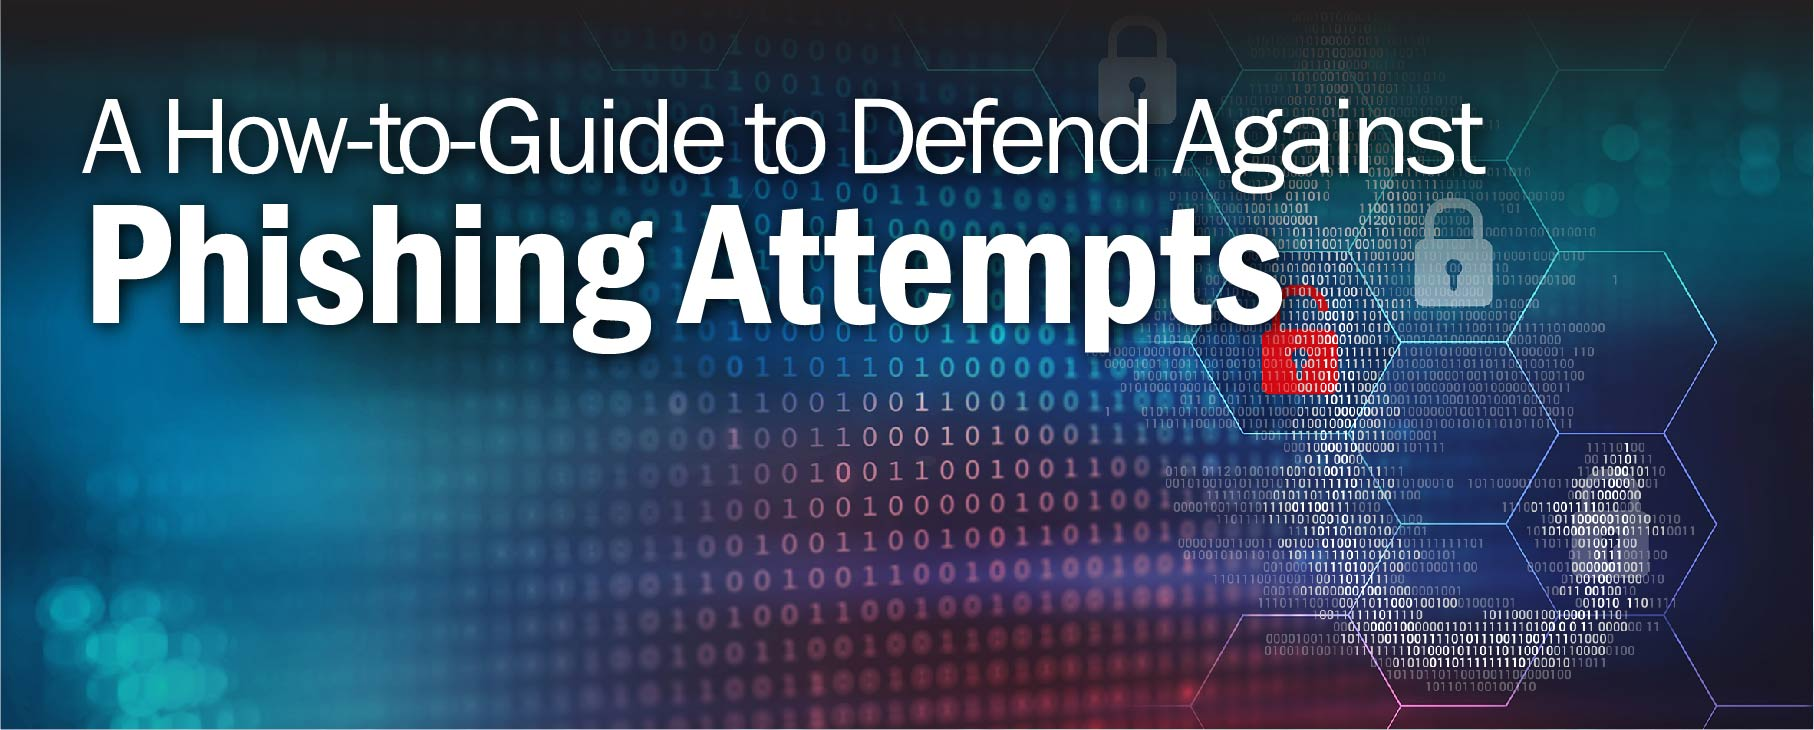 A How-to-Guide to Defend Against Phishing Attempts